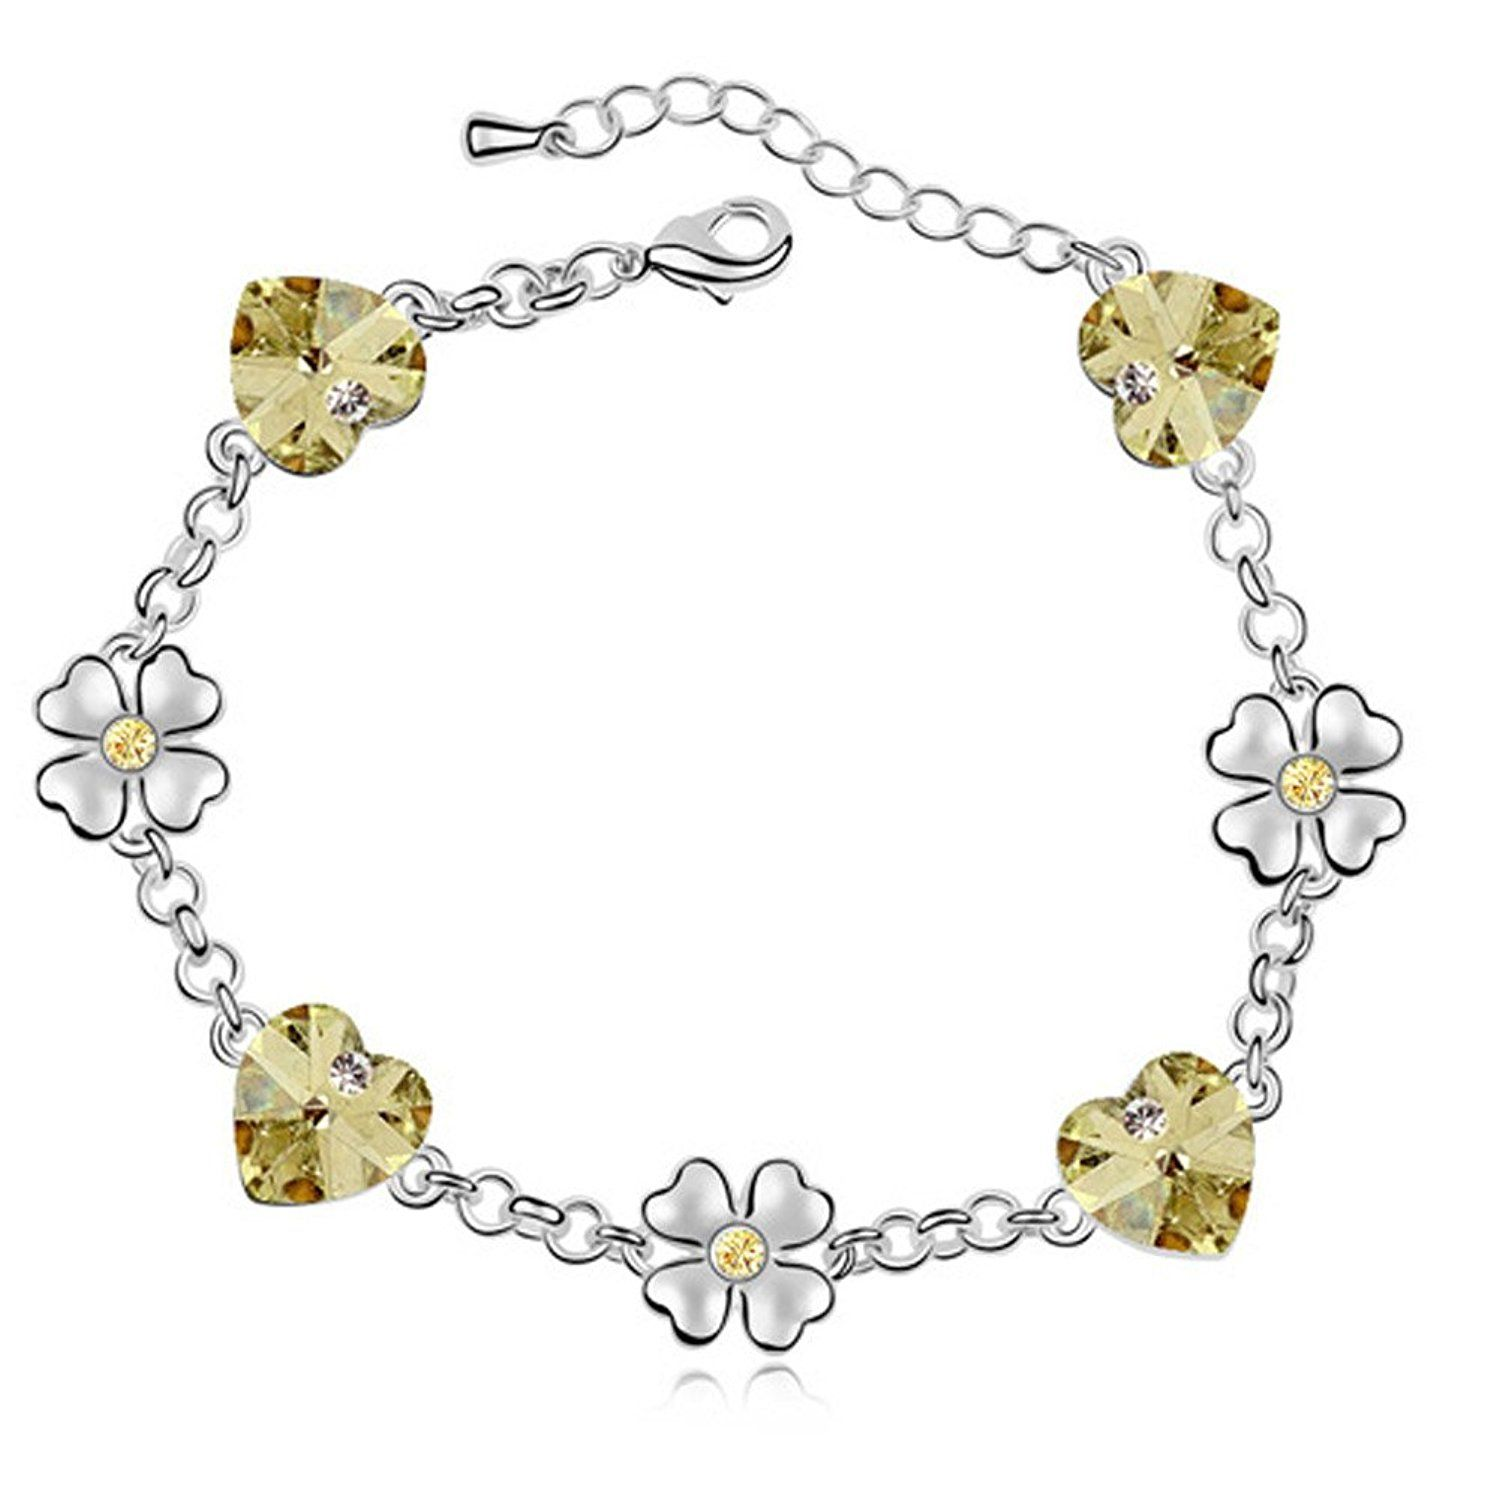 Latigerf flower heart bracelet white gold plated swarovski elements